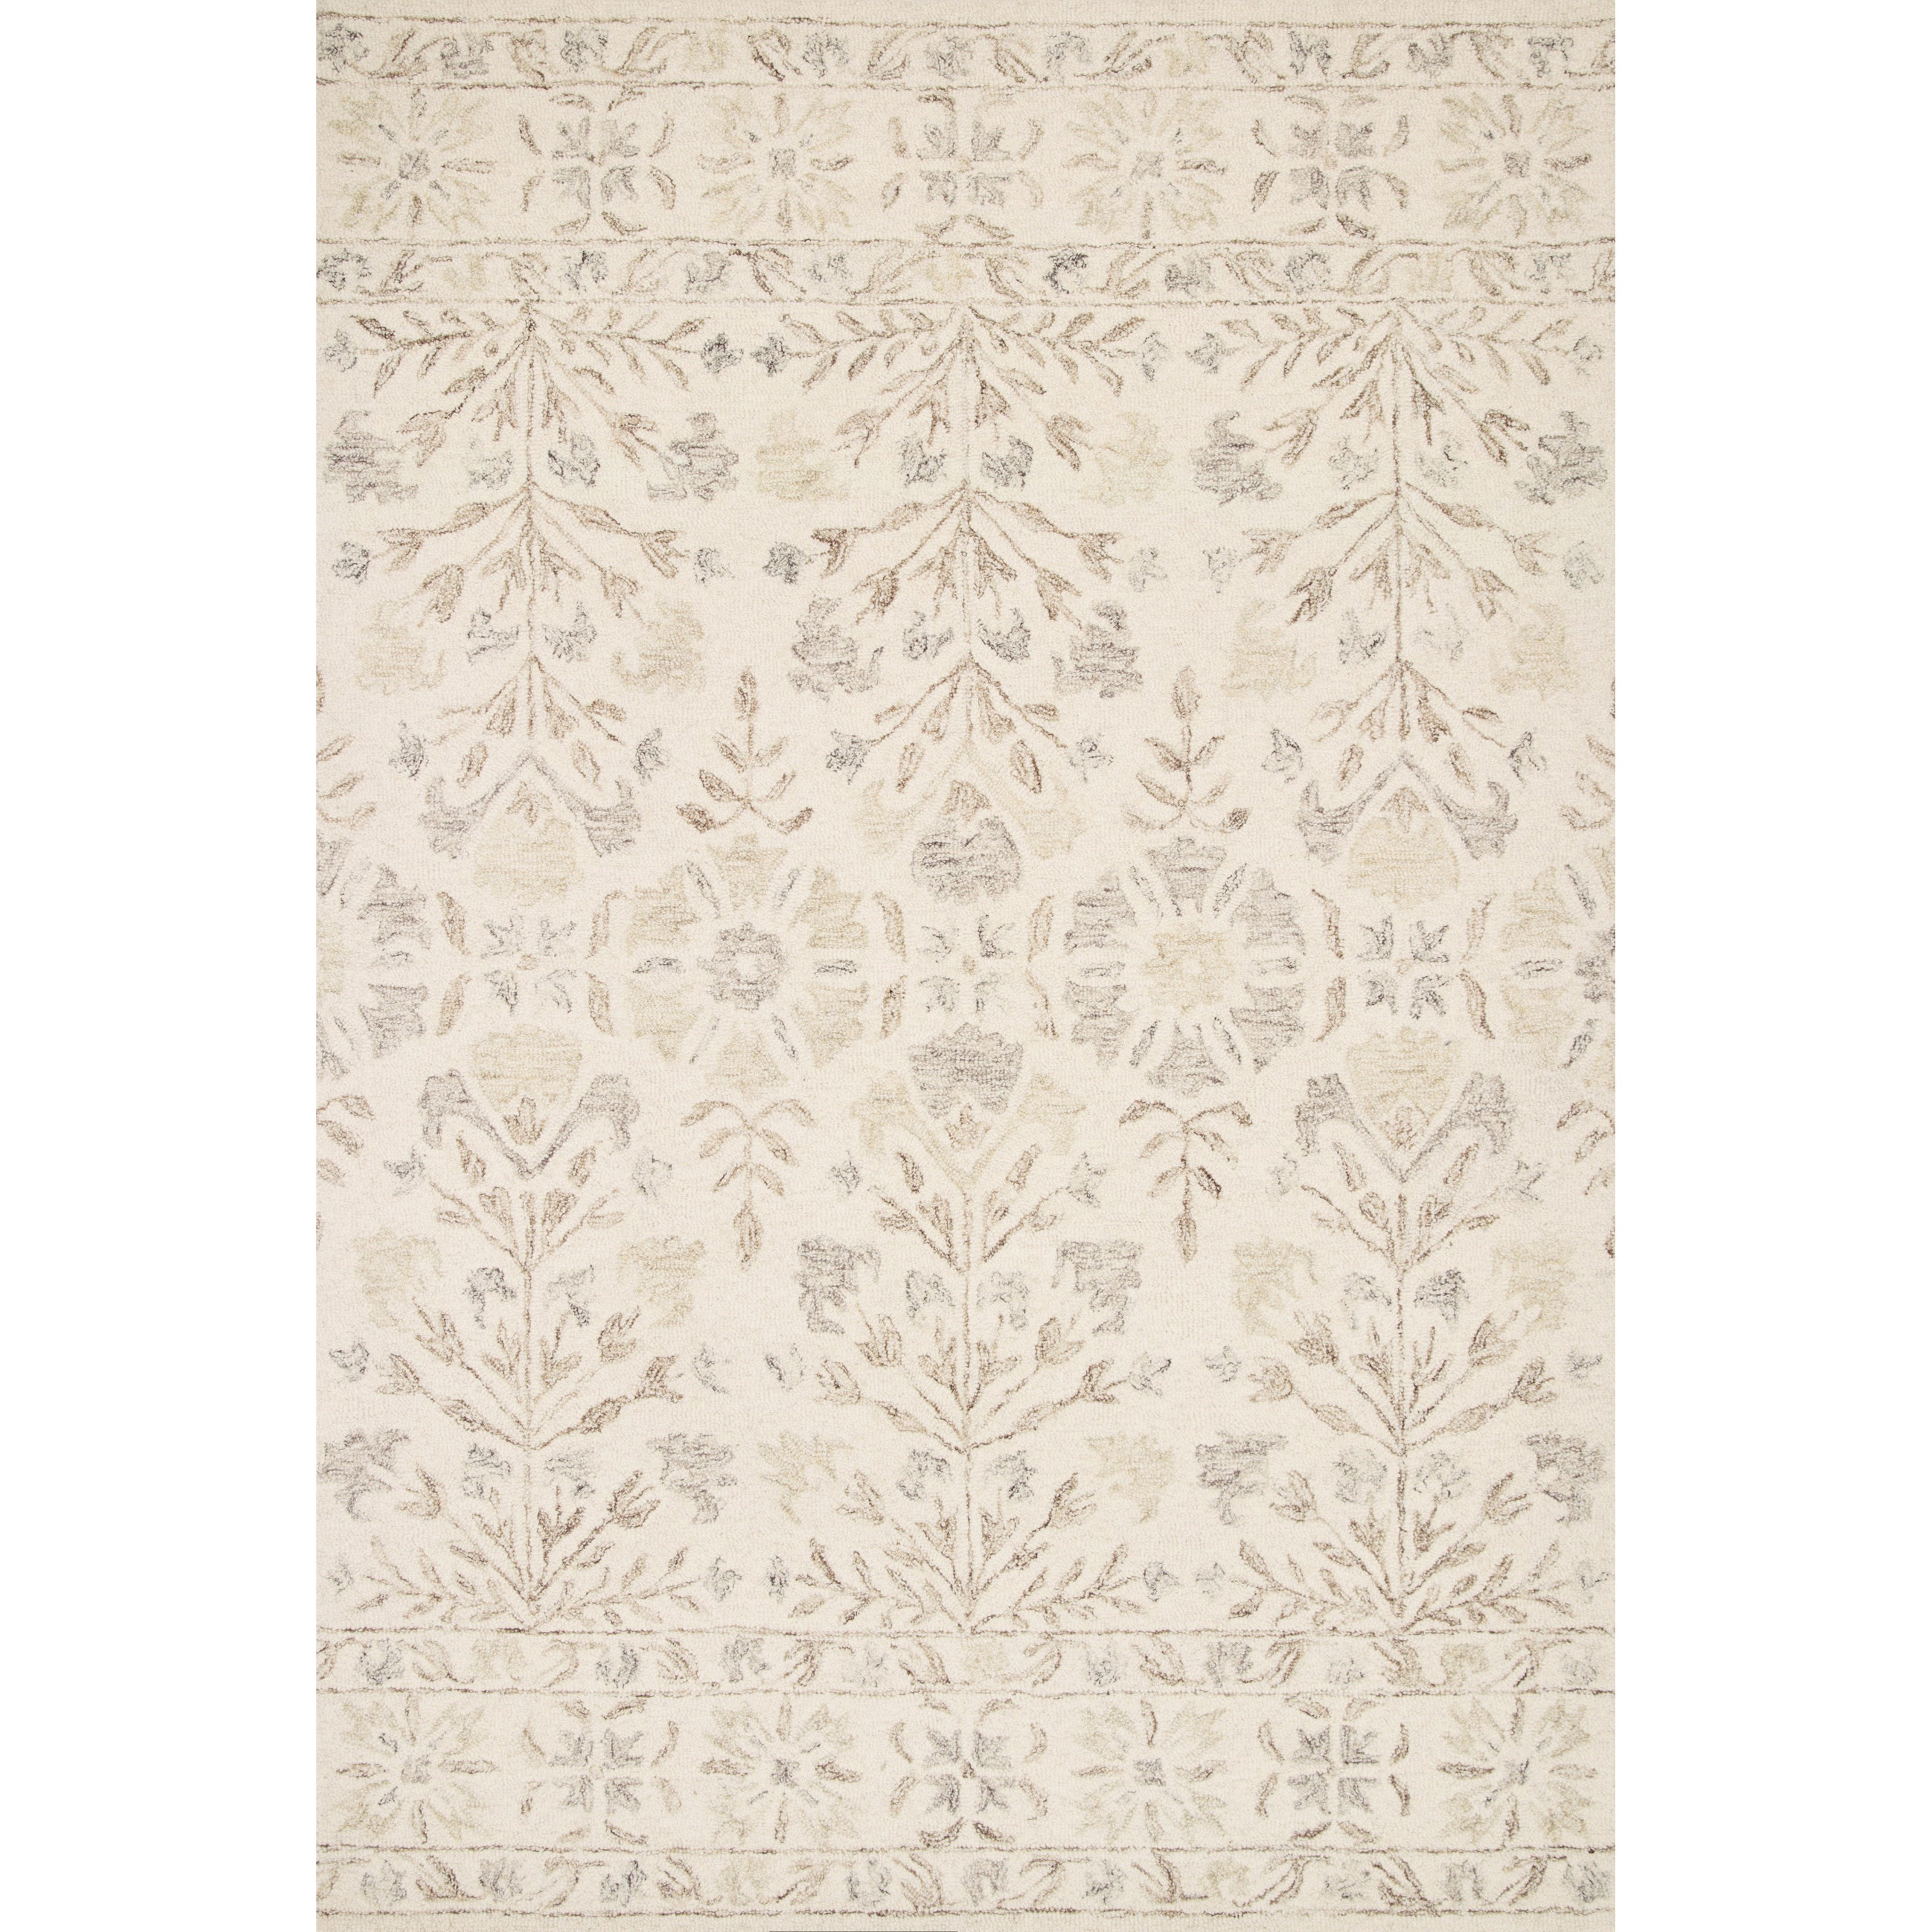 "Norabel 2'6"" x 7'6"" Ivory / Neutral Rug by Loloi Rugs at Virginia Furniture Market"